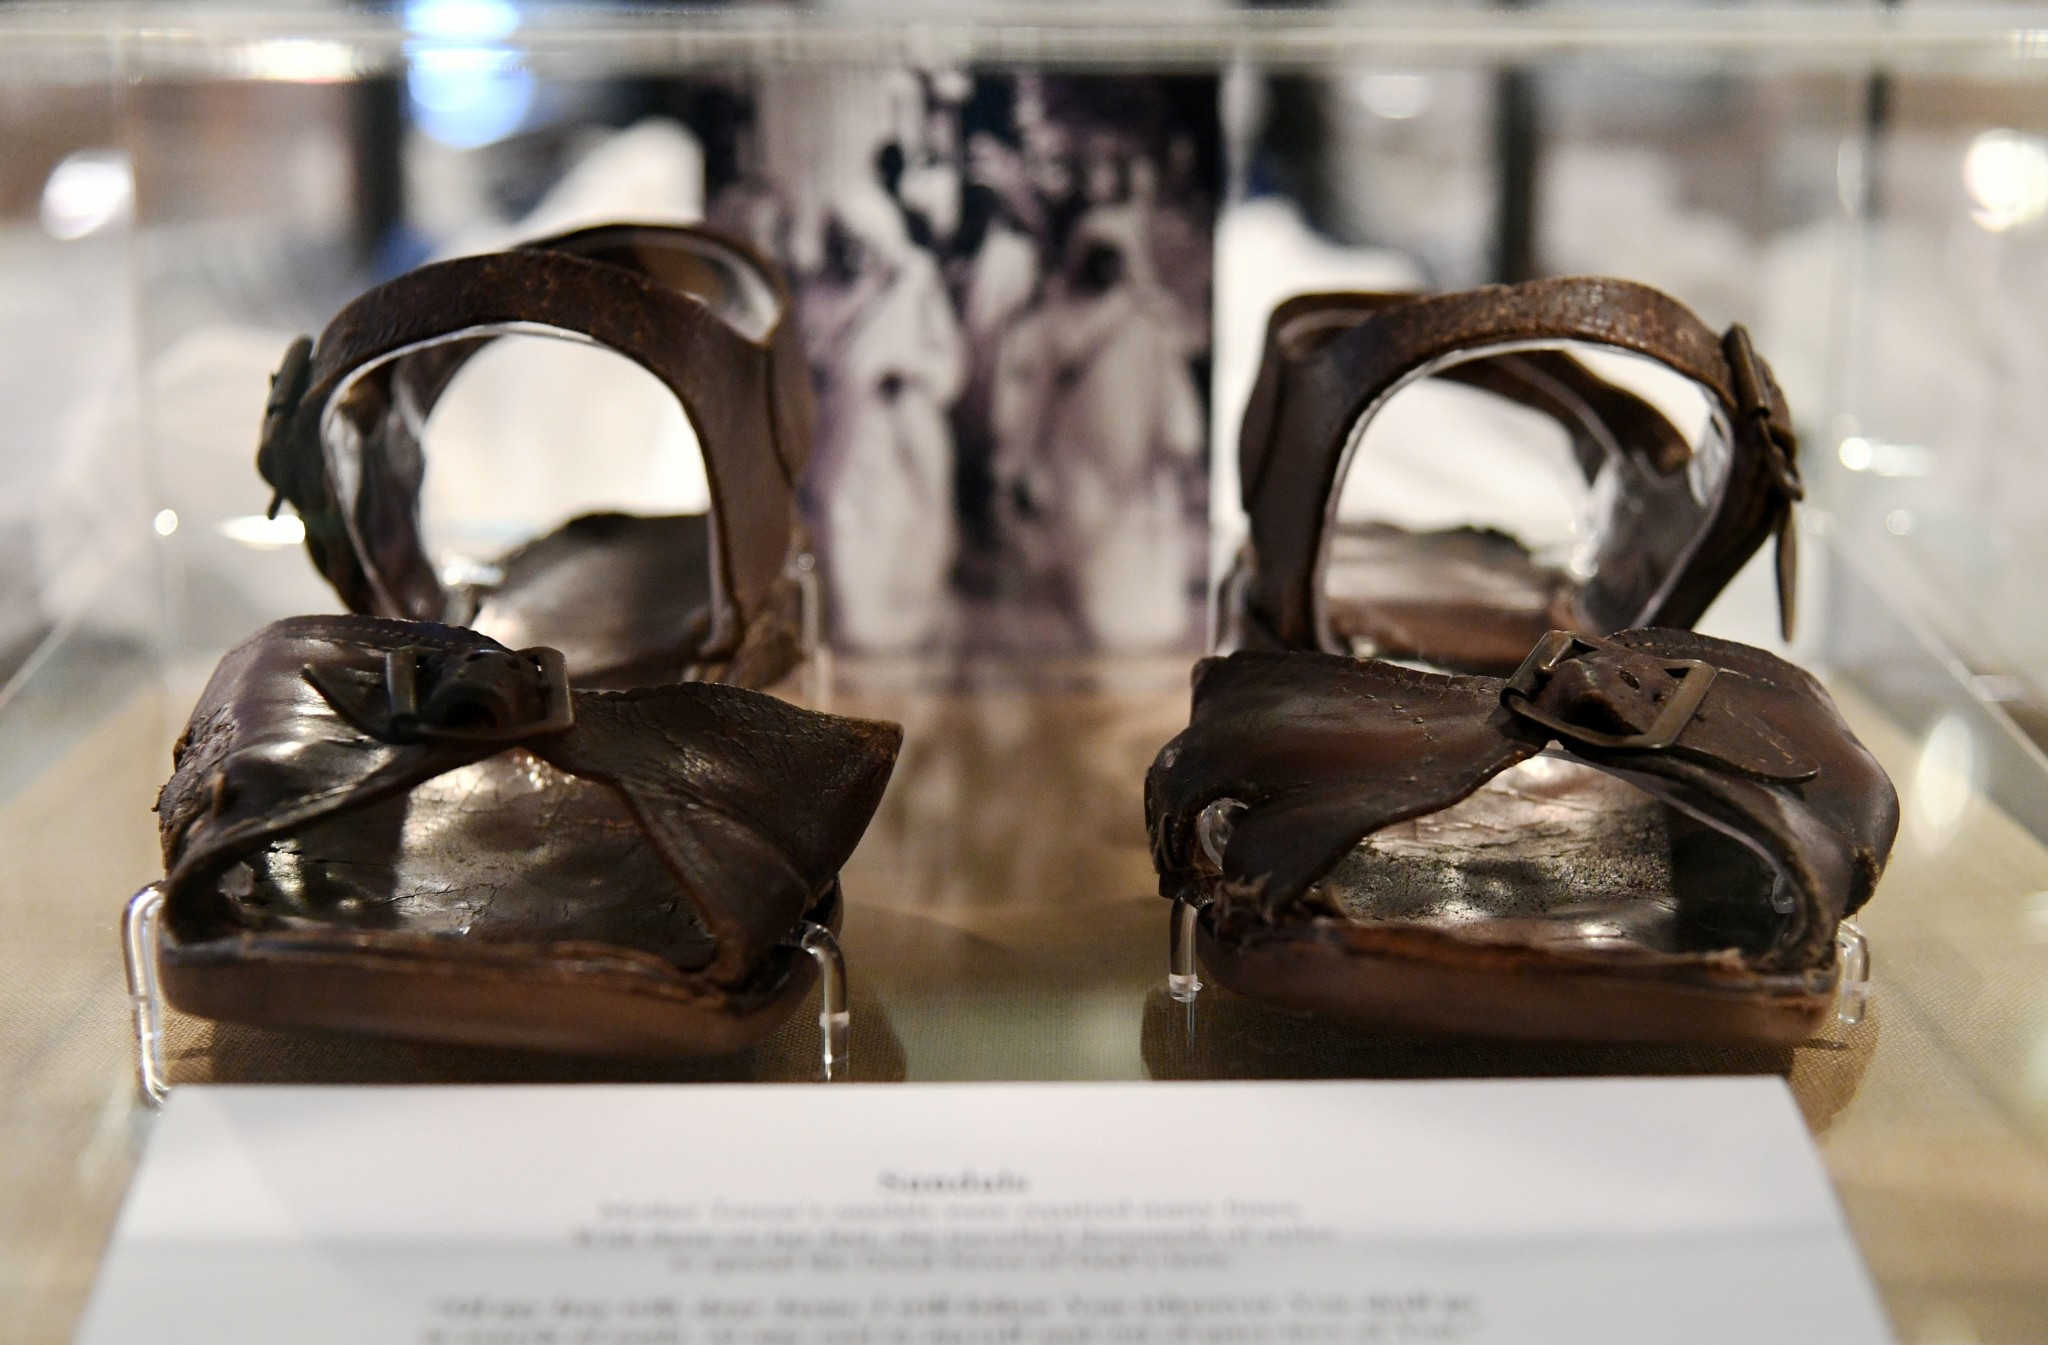 This picture taken on September 1, 2016, shows Mother Teresa's sandals, the Albanian Roman Catholic nun and missionary, displayed during a photographic exhibition in Rome. A full programme to mark the conferring of sainthood on the late Albanian Roman Catholic nun and missionary includes a photographic exhibition and a musical comedy on September 1, 2016, a prayer evening on September 2, and a catechism which Pope Francis will preside over September 3. The canonisation will then be held Sunday in St Peter's Square in a ceremony set to draw tens of thousands of faithful to recognise the sainthood of the 1979 Nobel Peace Prize winner, who died aged 87 in India in 1997.  / AFP / vincenzo pinto        (Photo credit should read VINCENZO PINTO/AFP/Getty Images)